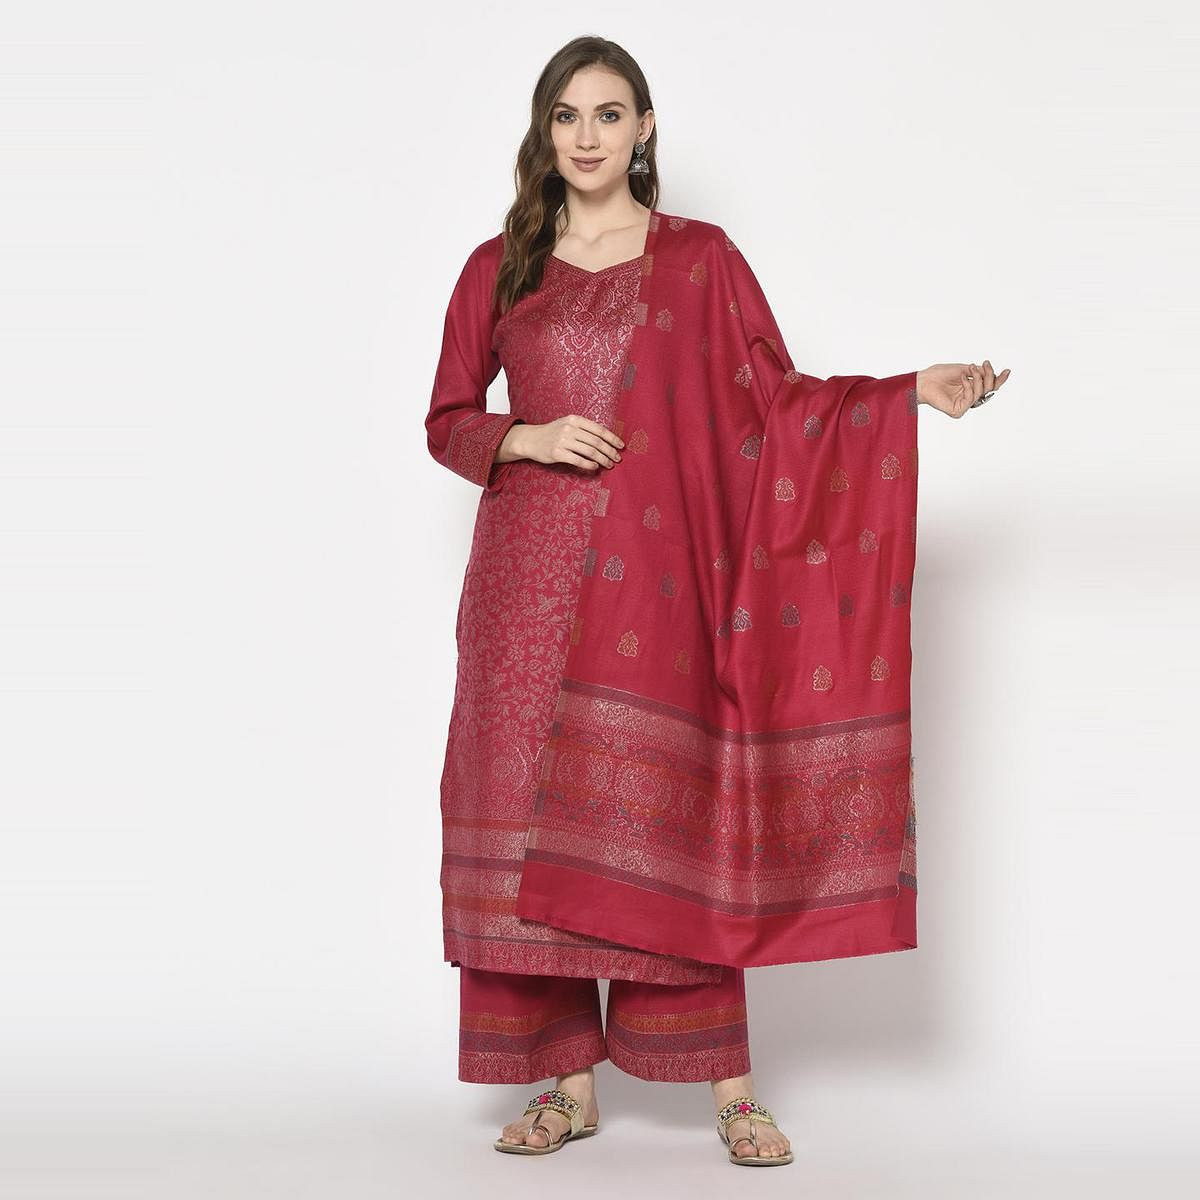 Safaa - Red Colored Party Wear Printed Acro Wool Dress Material